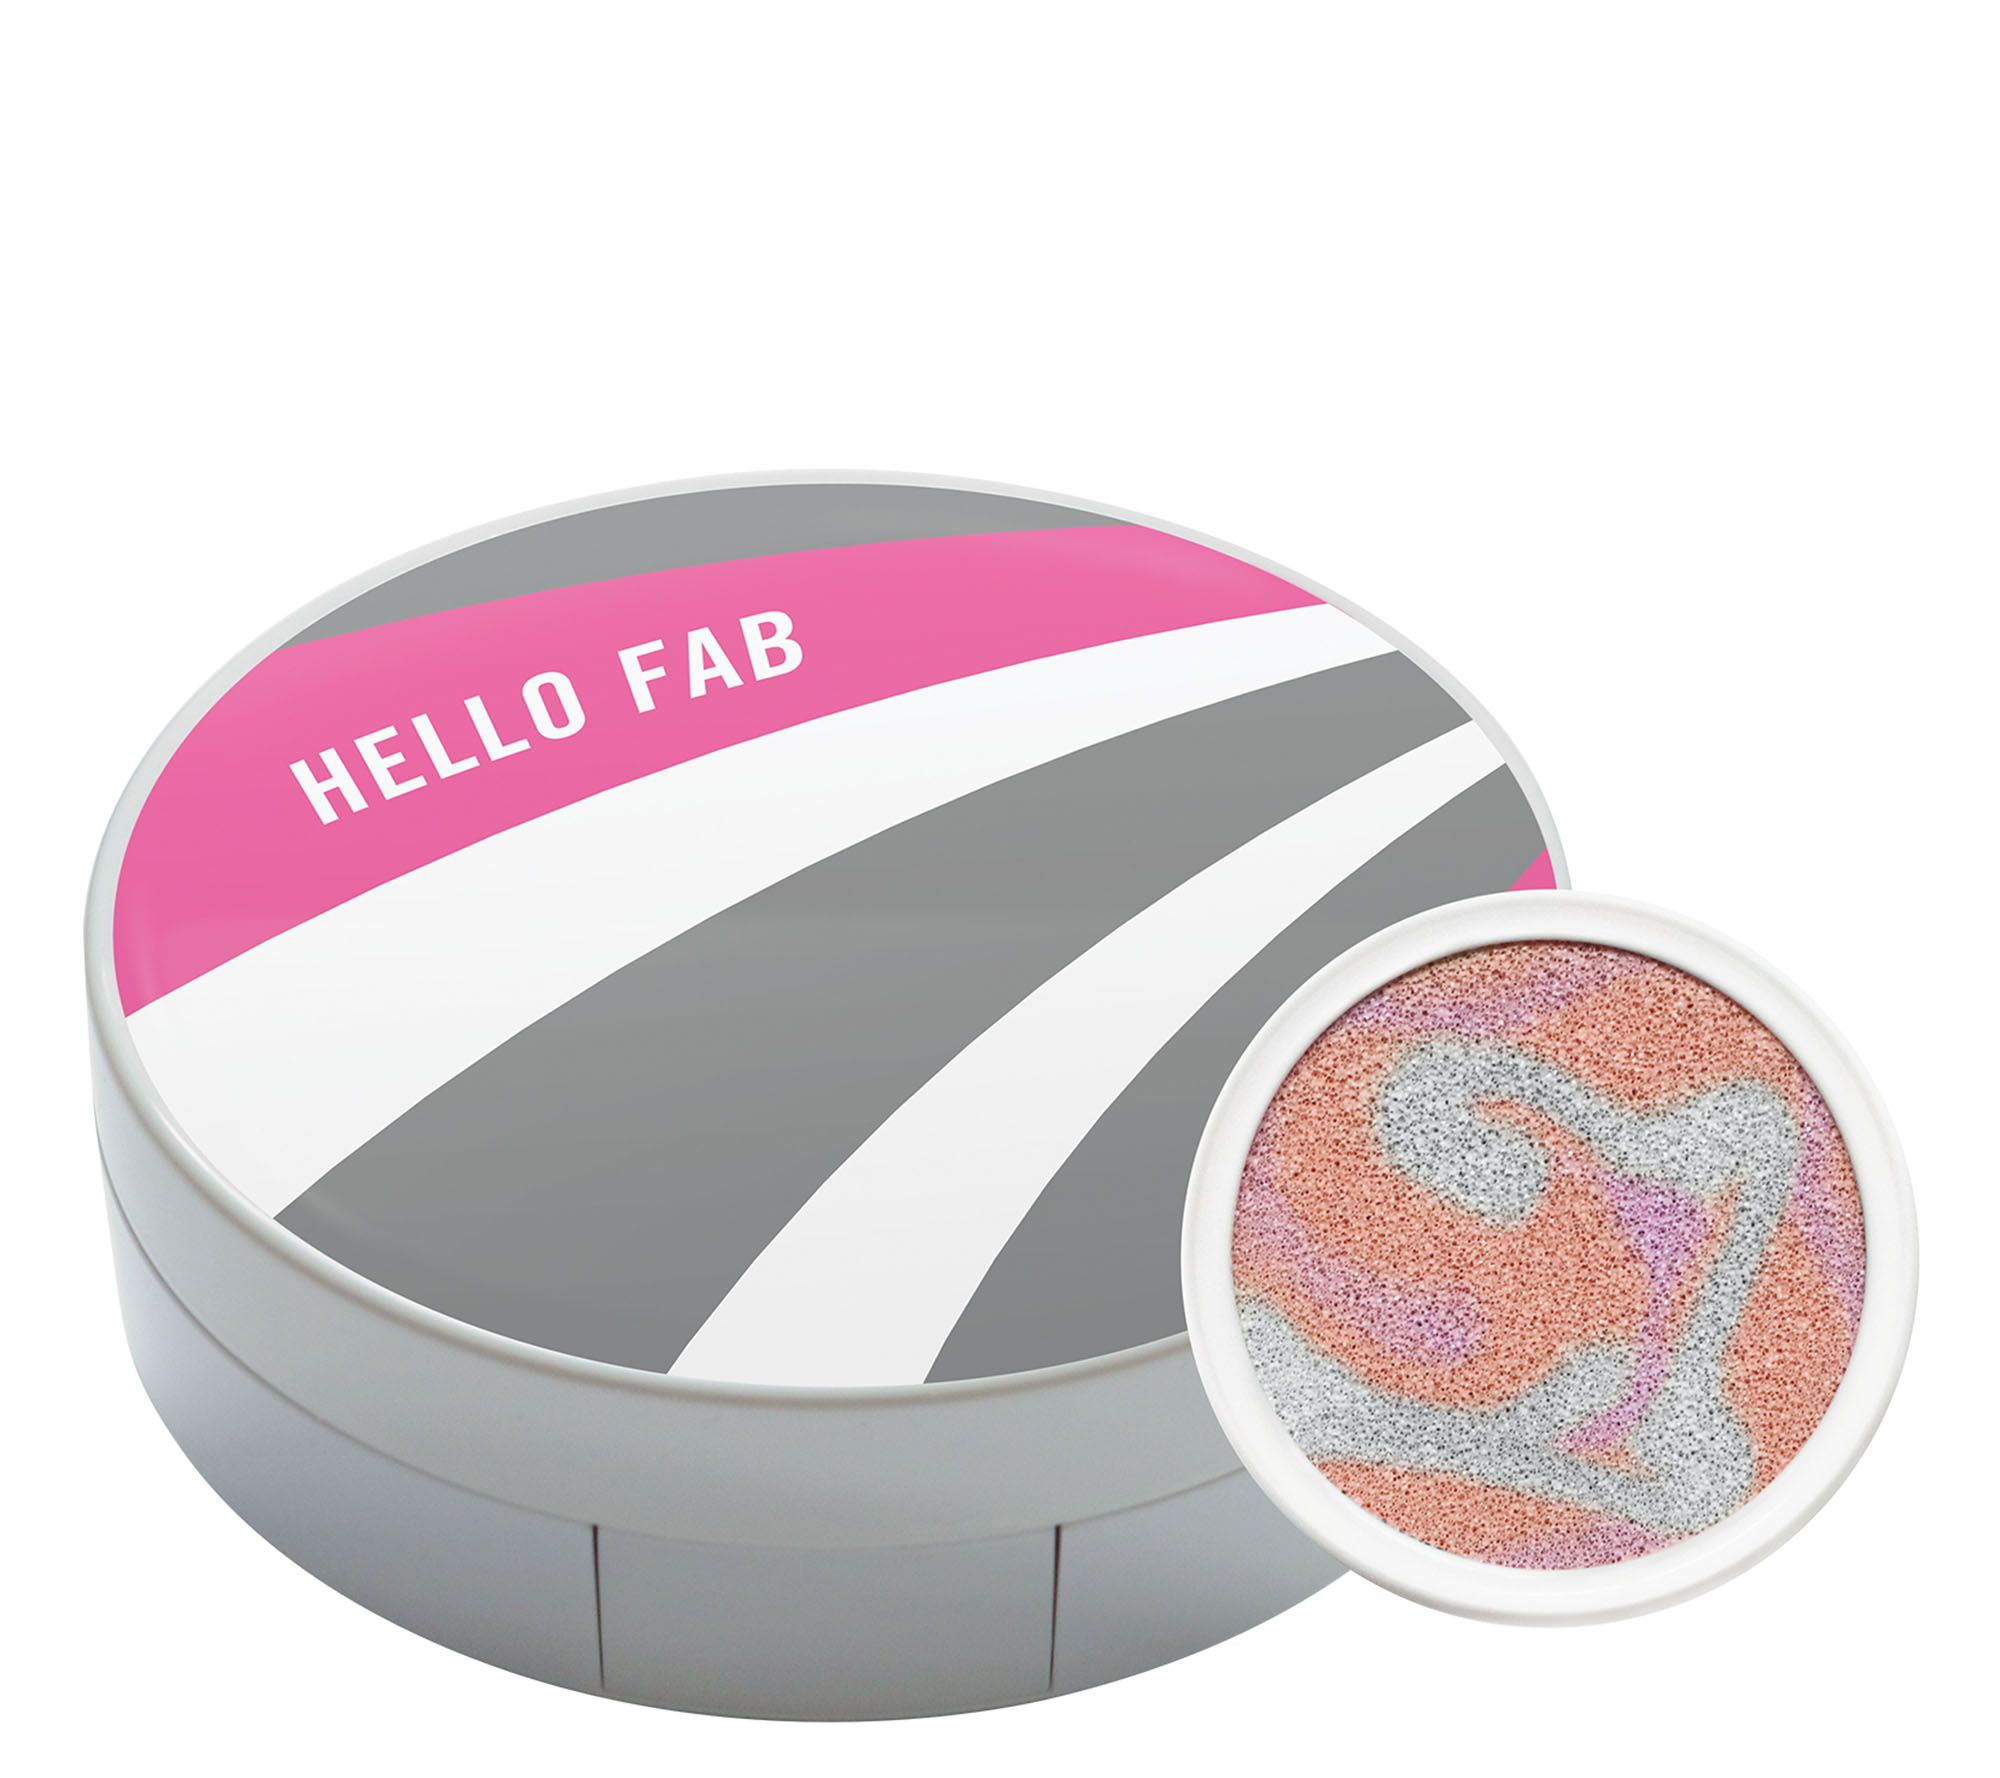 Hello Fab 3 In 1 Superfruit Color Correcting Cushion by First Aid Beauty #16